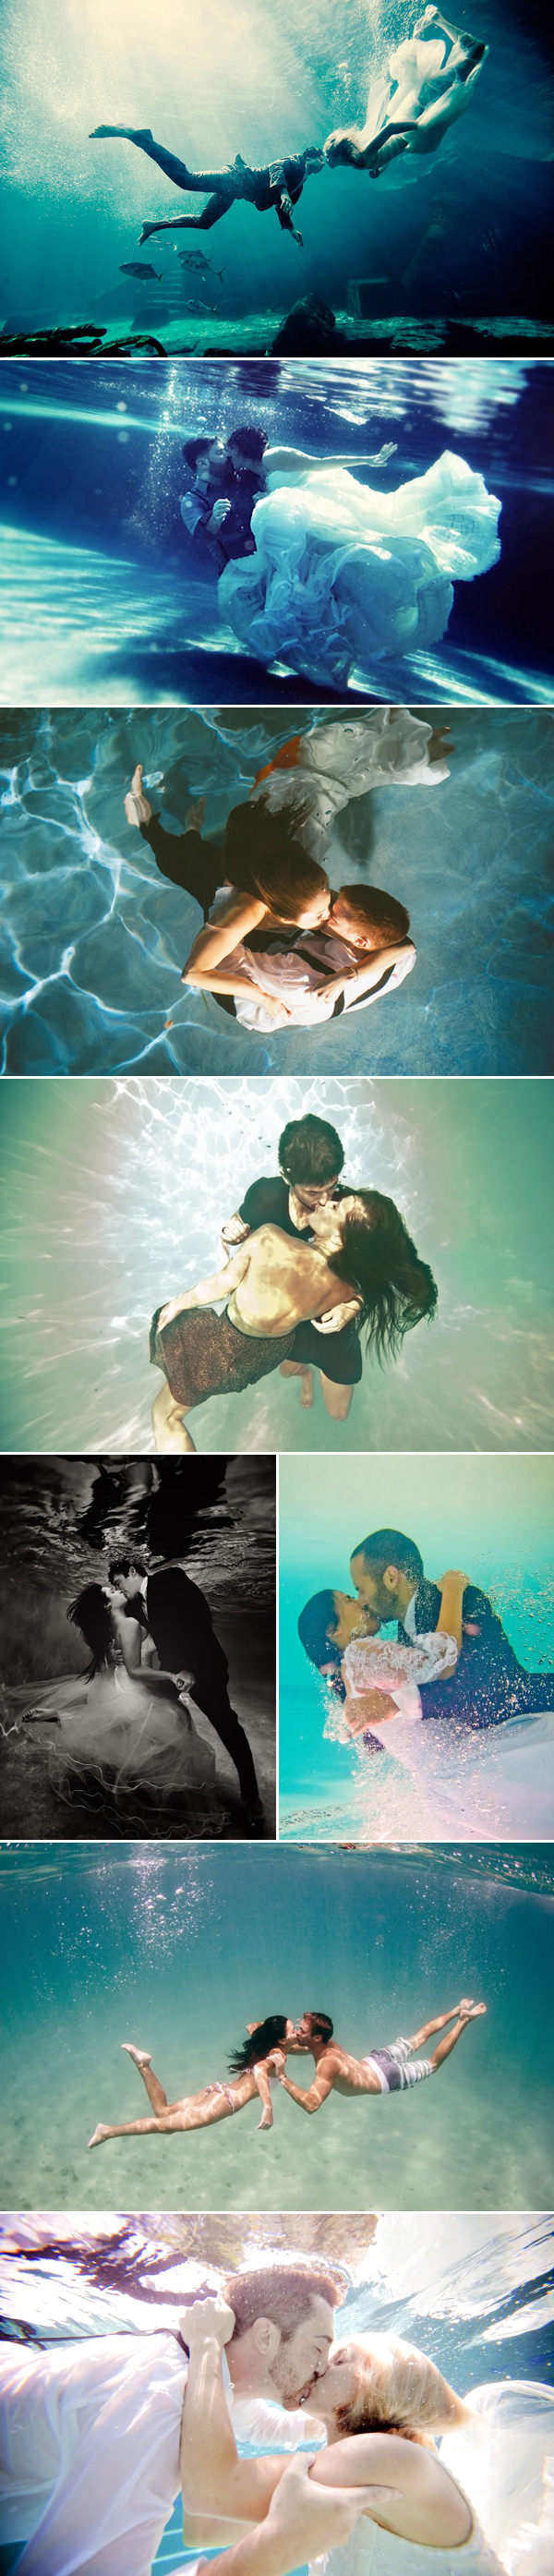 underwater01-romantic